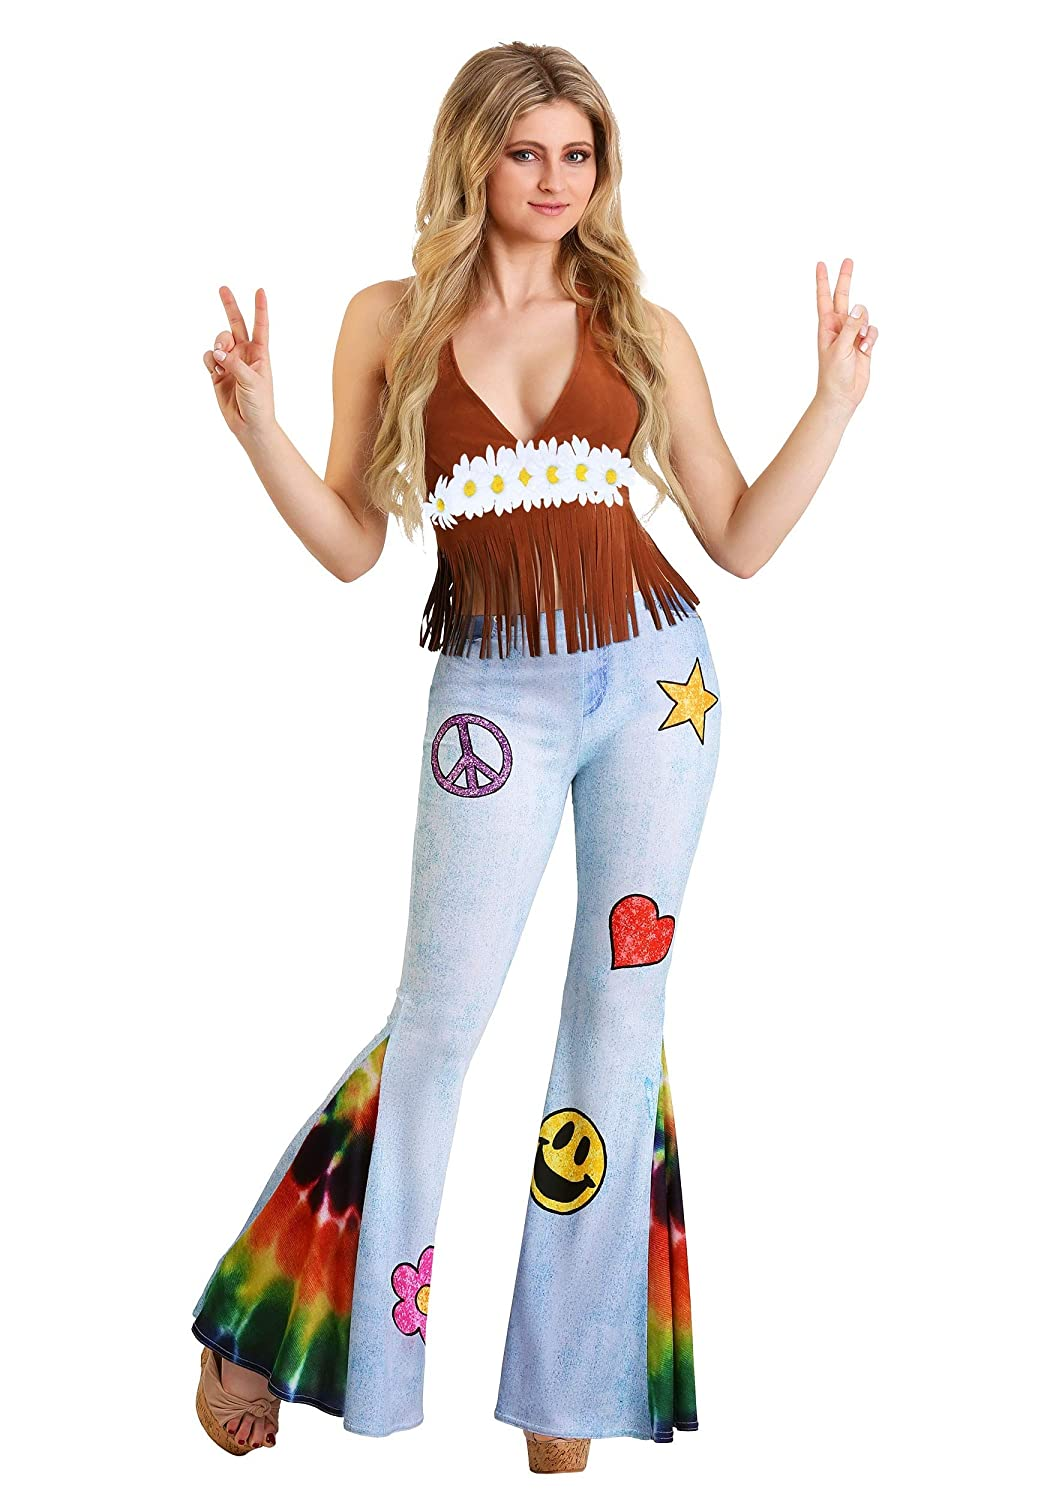 60s Costumes: Hippie, Go Go Dancer, Flower Child, Mod Style Patchwork Hippie Costume Womens $34.99 AT vintagedancer.com